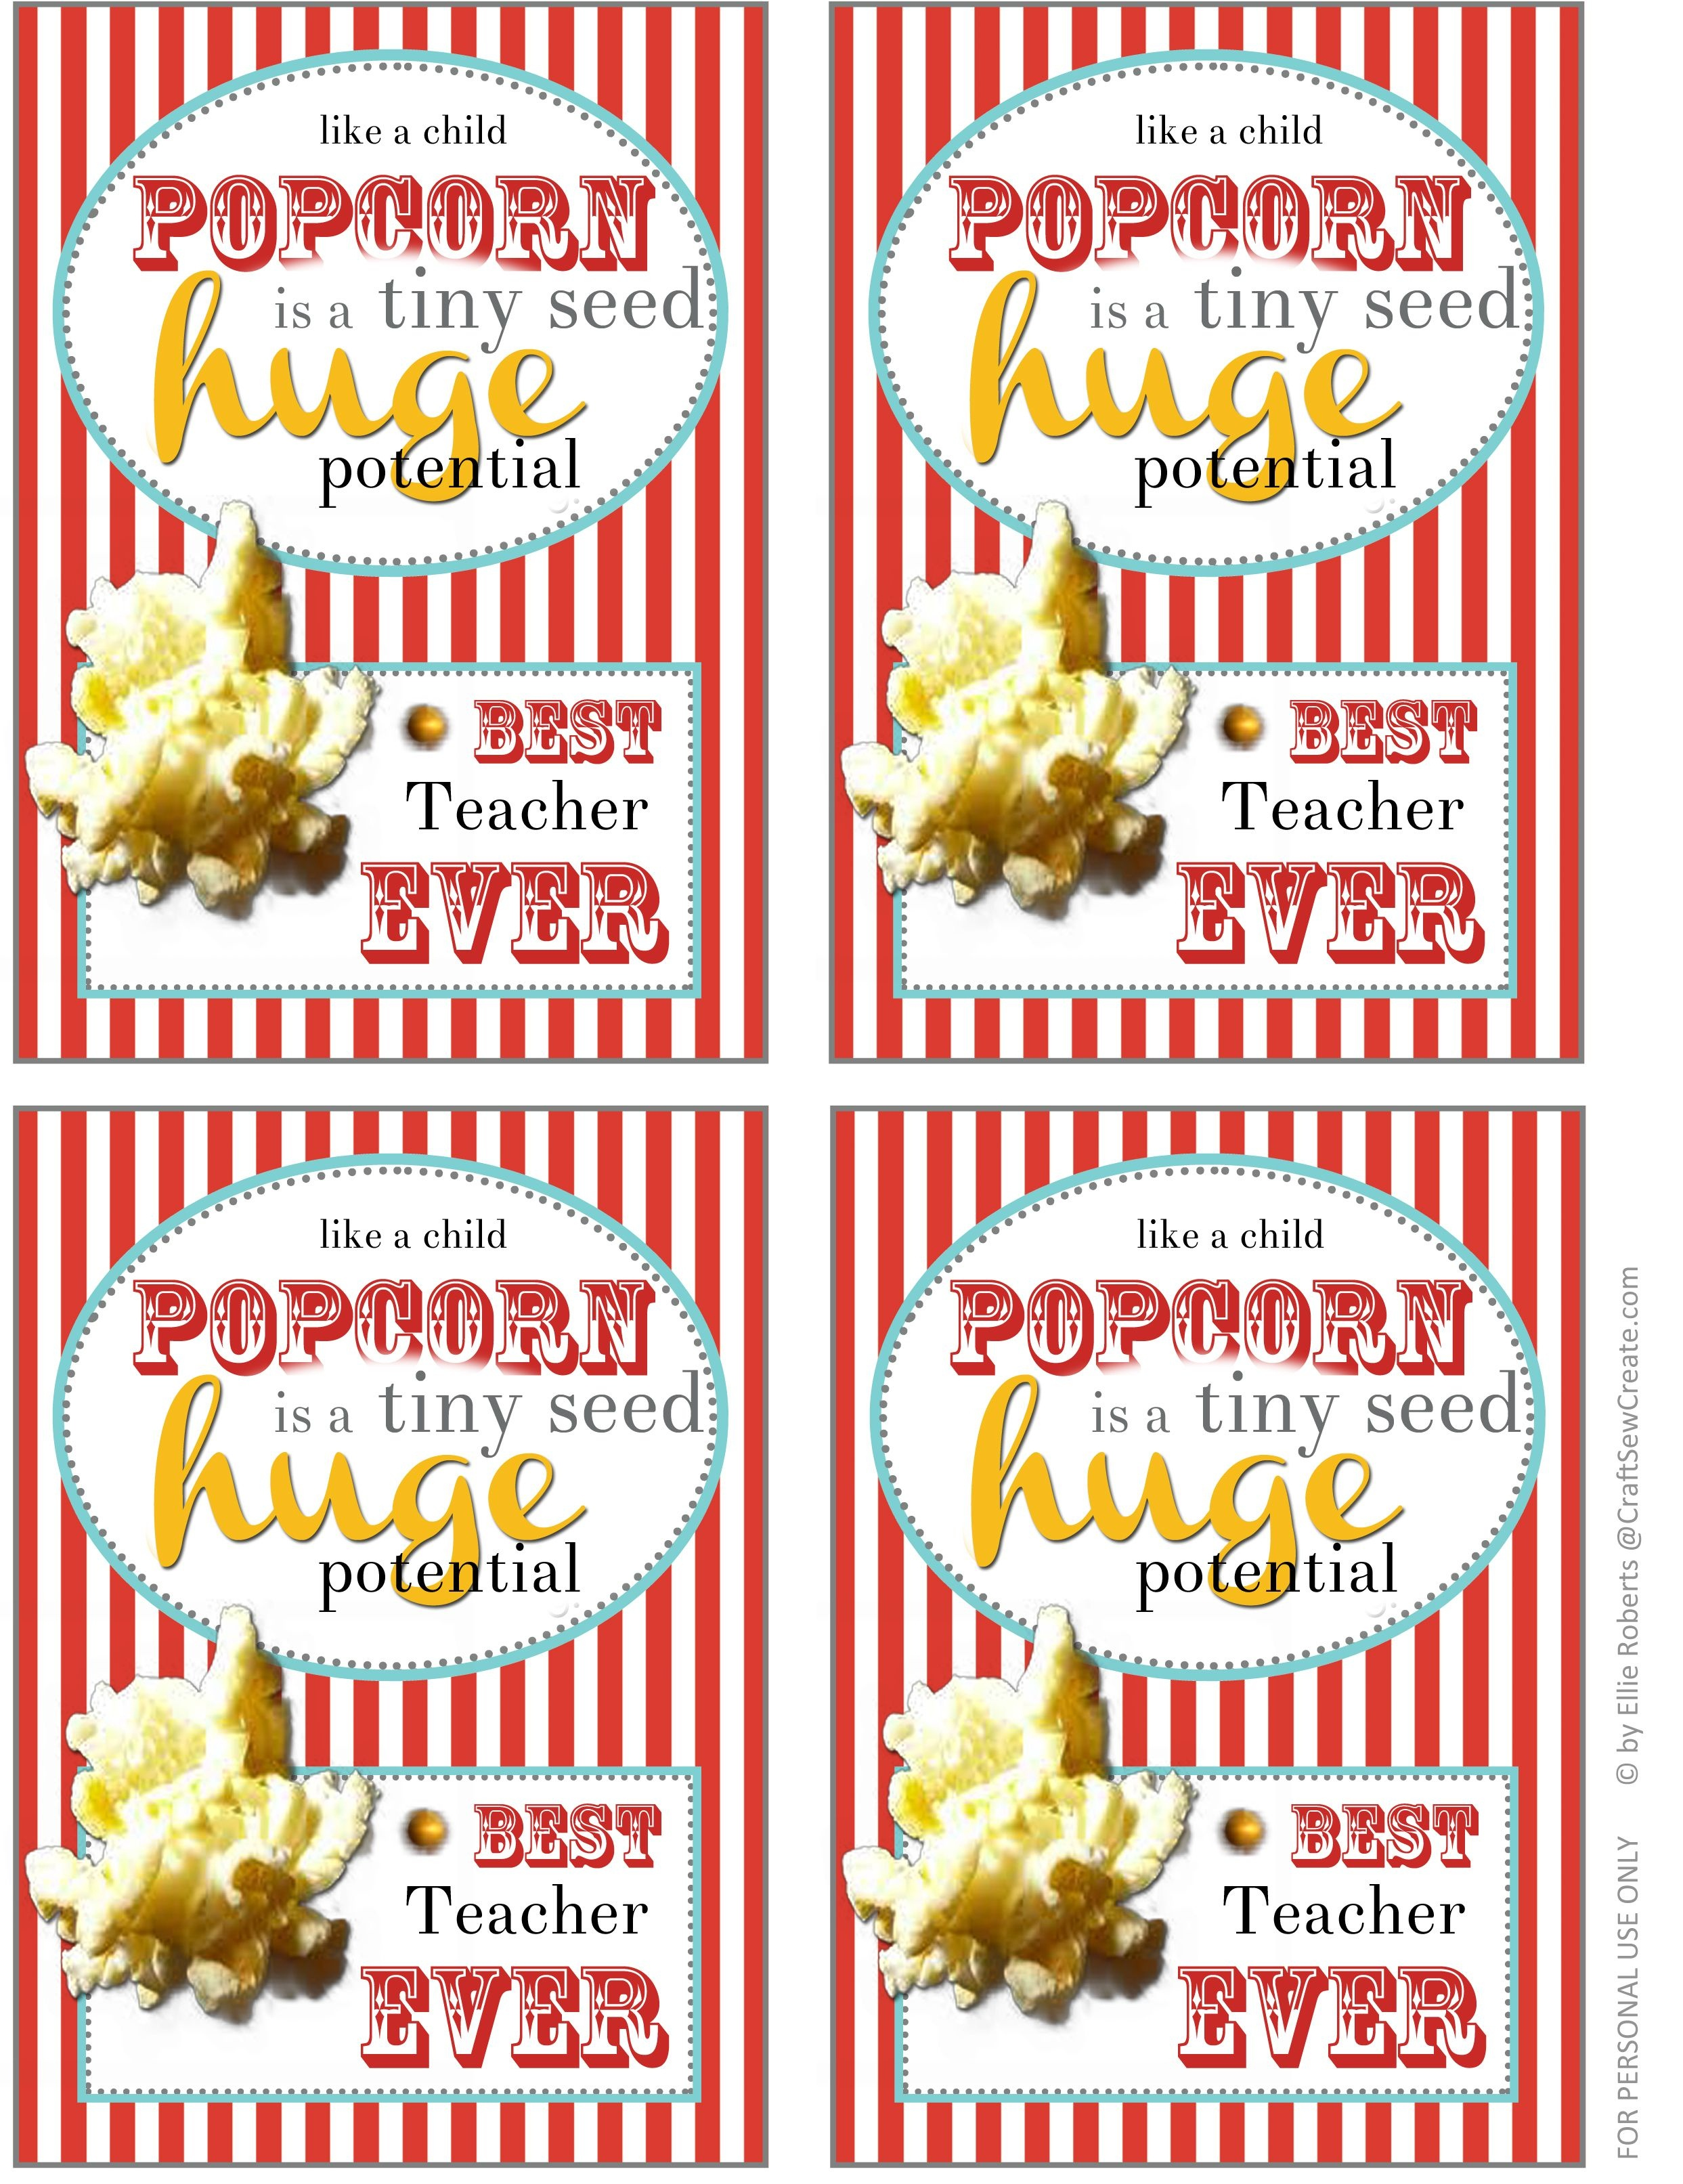 Thank You For Popcorn Printable For Primary Teachers | Primary - Free Popcorn Teacher Appreciation Printable